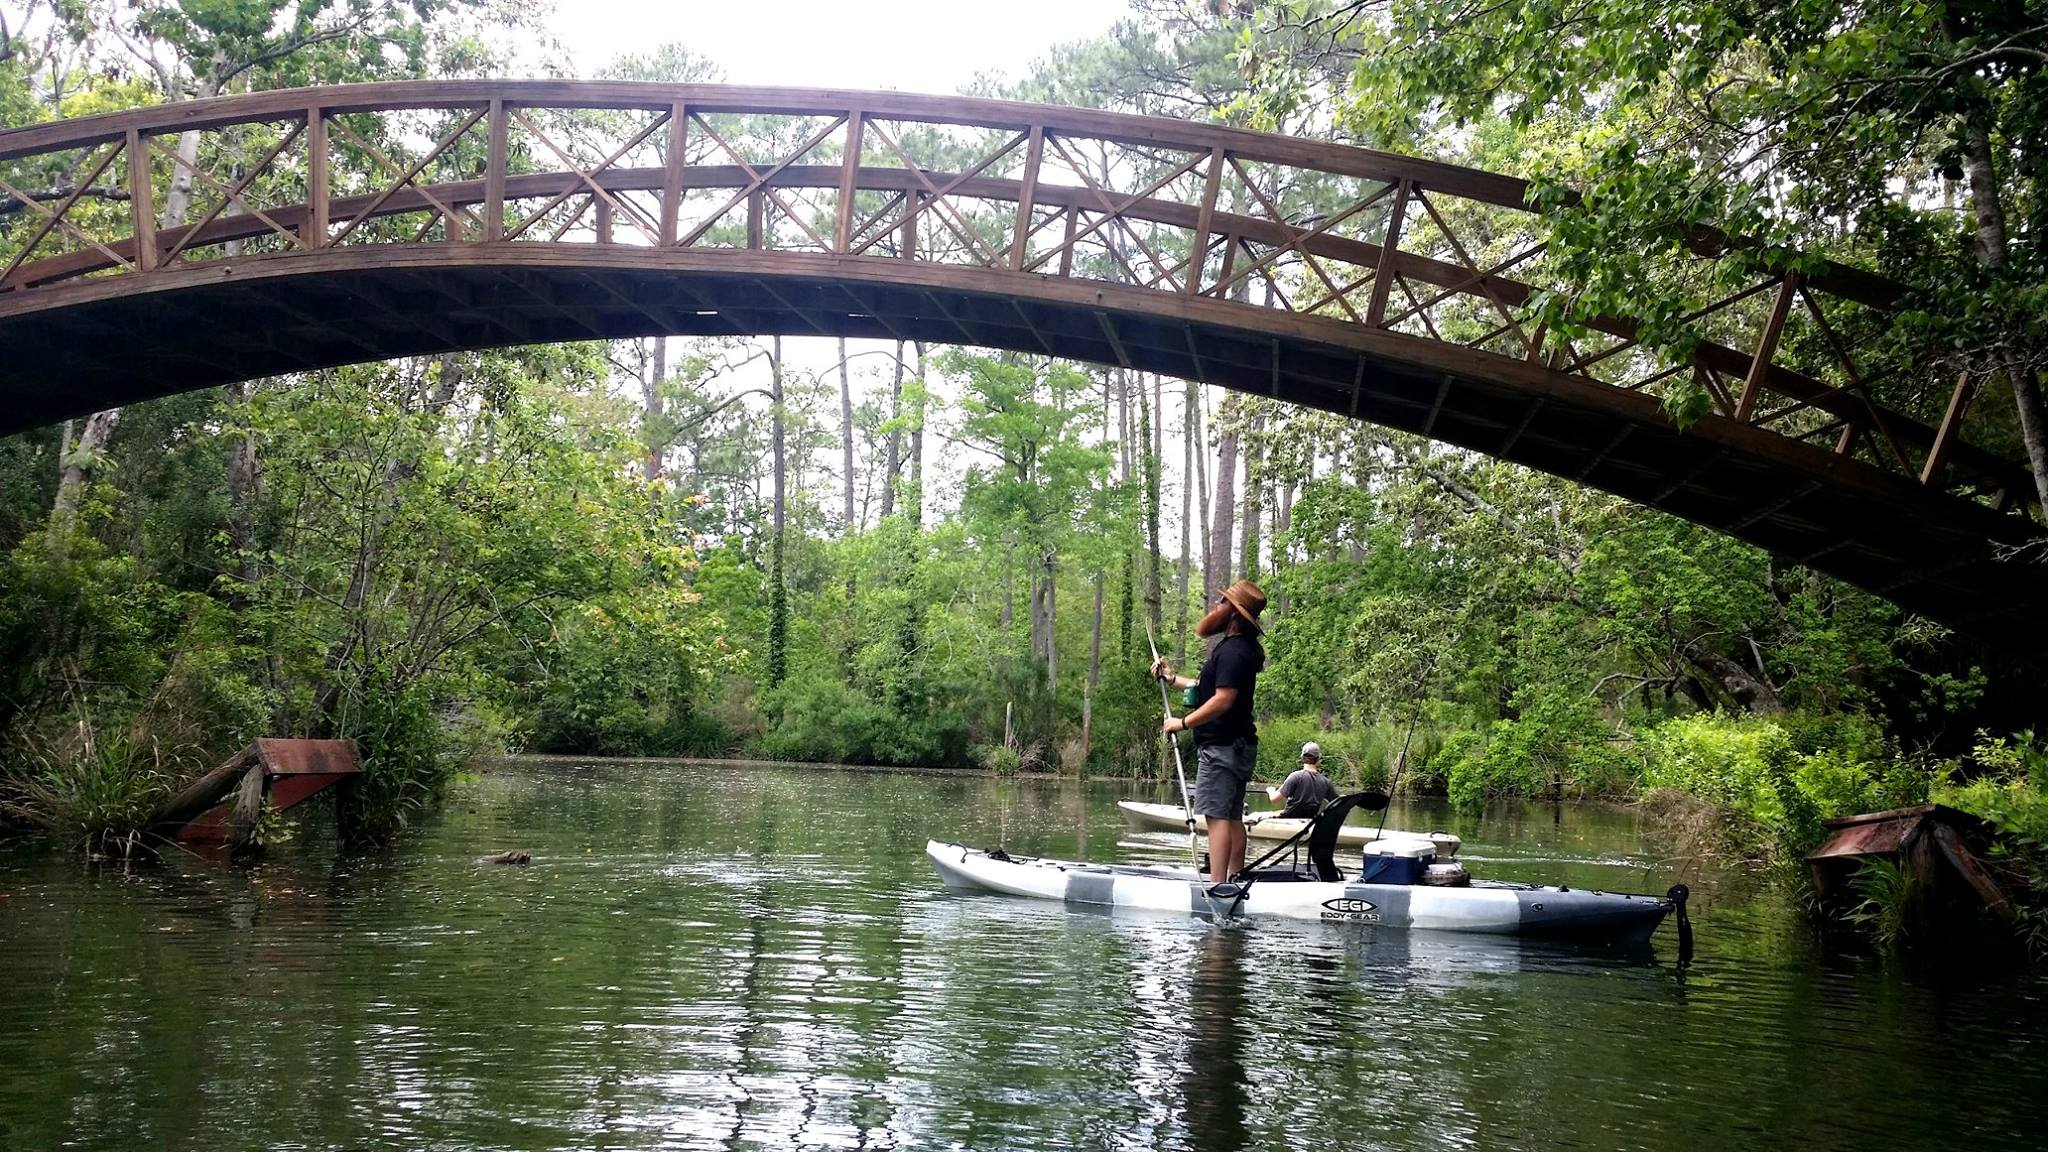 Kayak Fishing and Sun Protection, Preventing Disaster